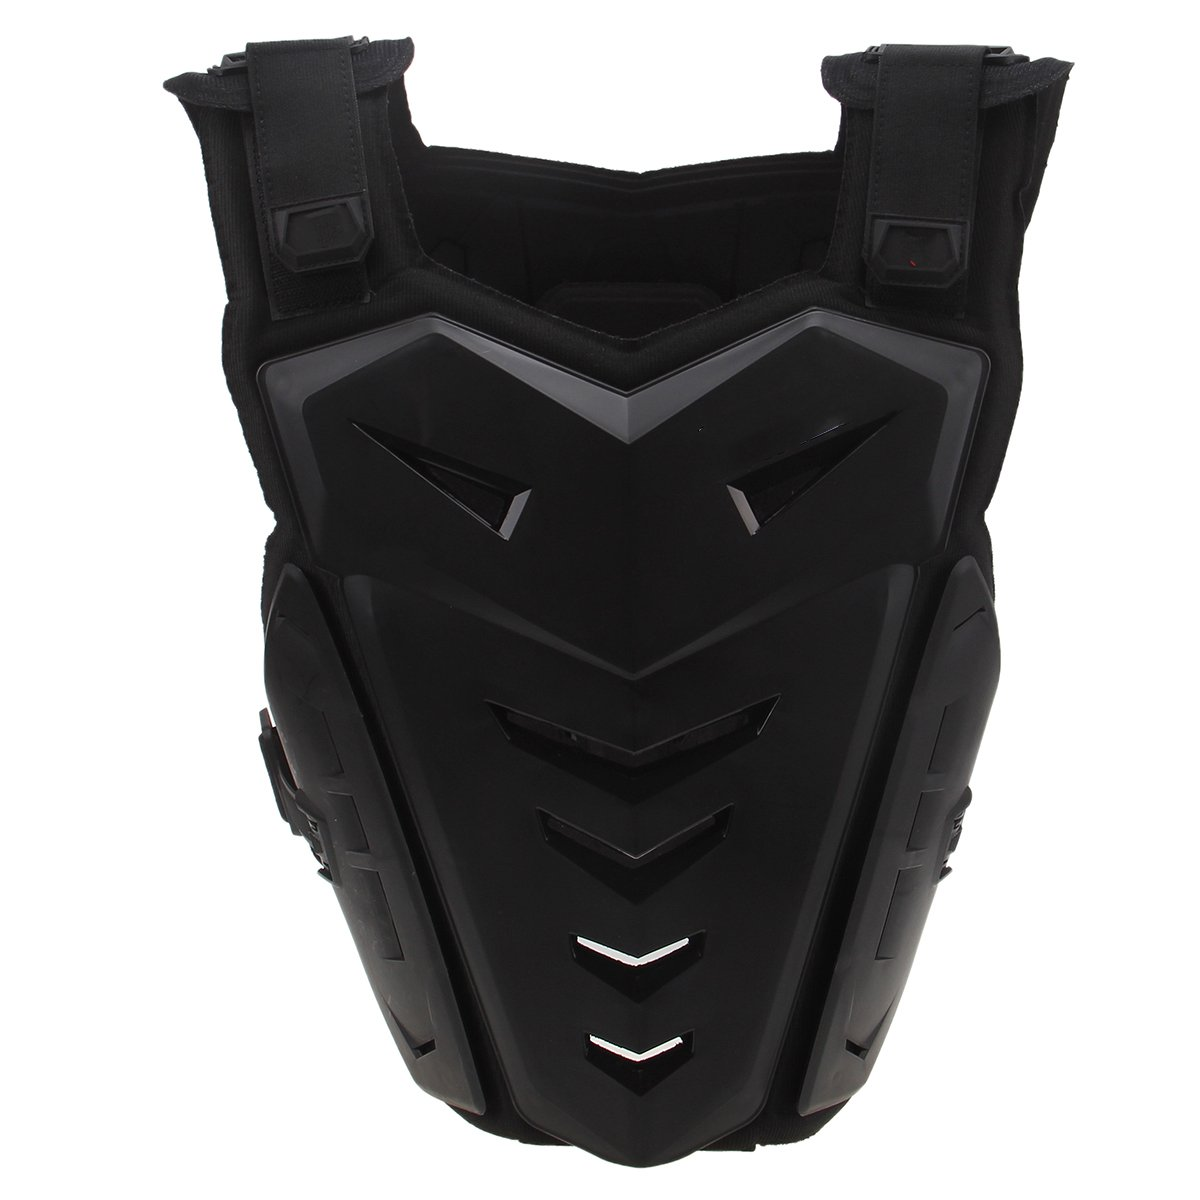 Chest Back Vest Armor Protector for Motocross Riding Skating Skiing Scooter by Possbay (Image #1)